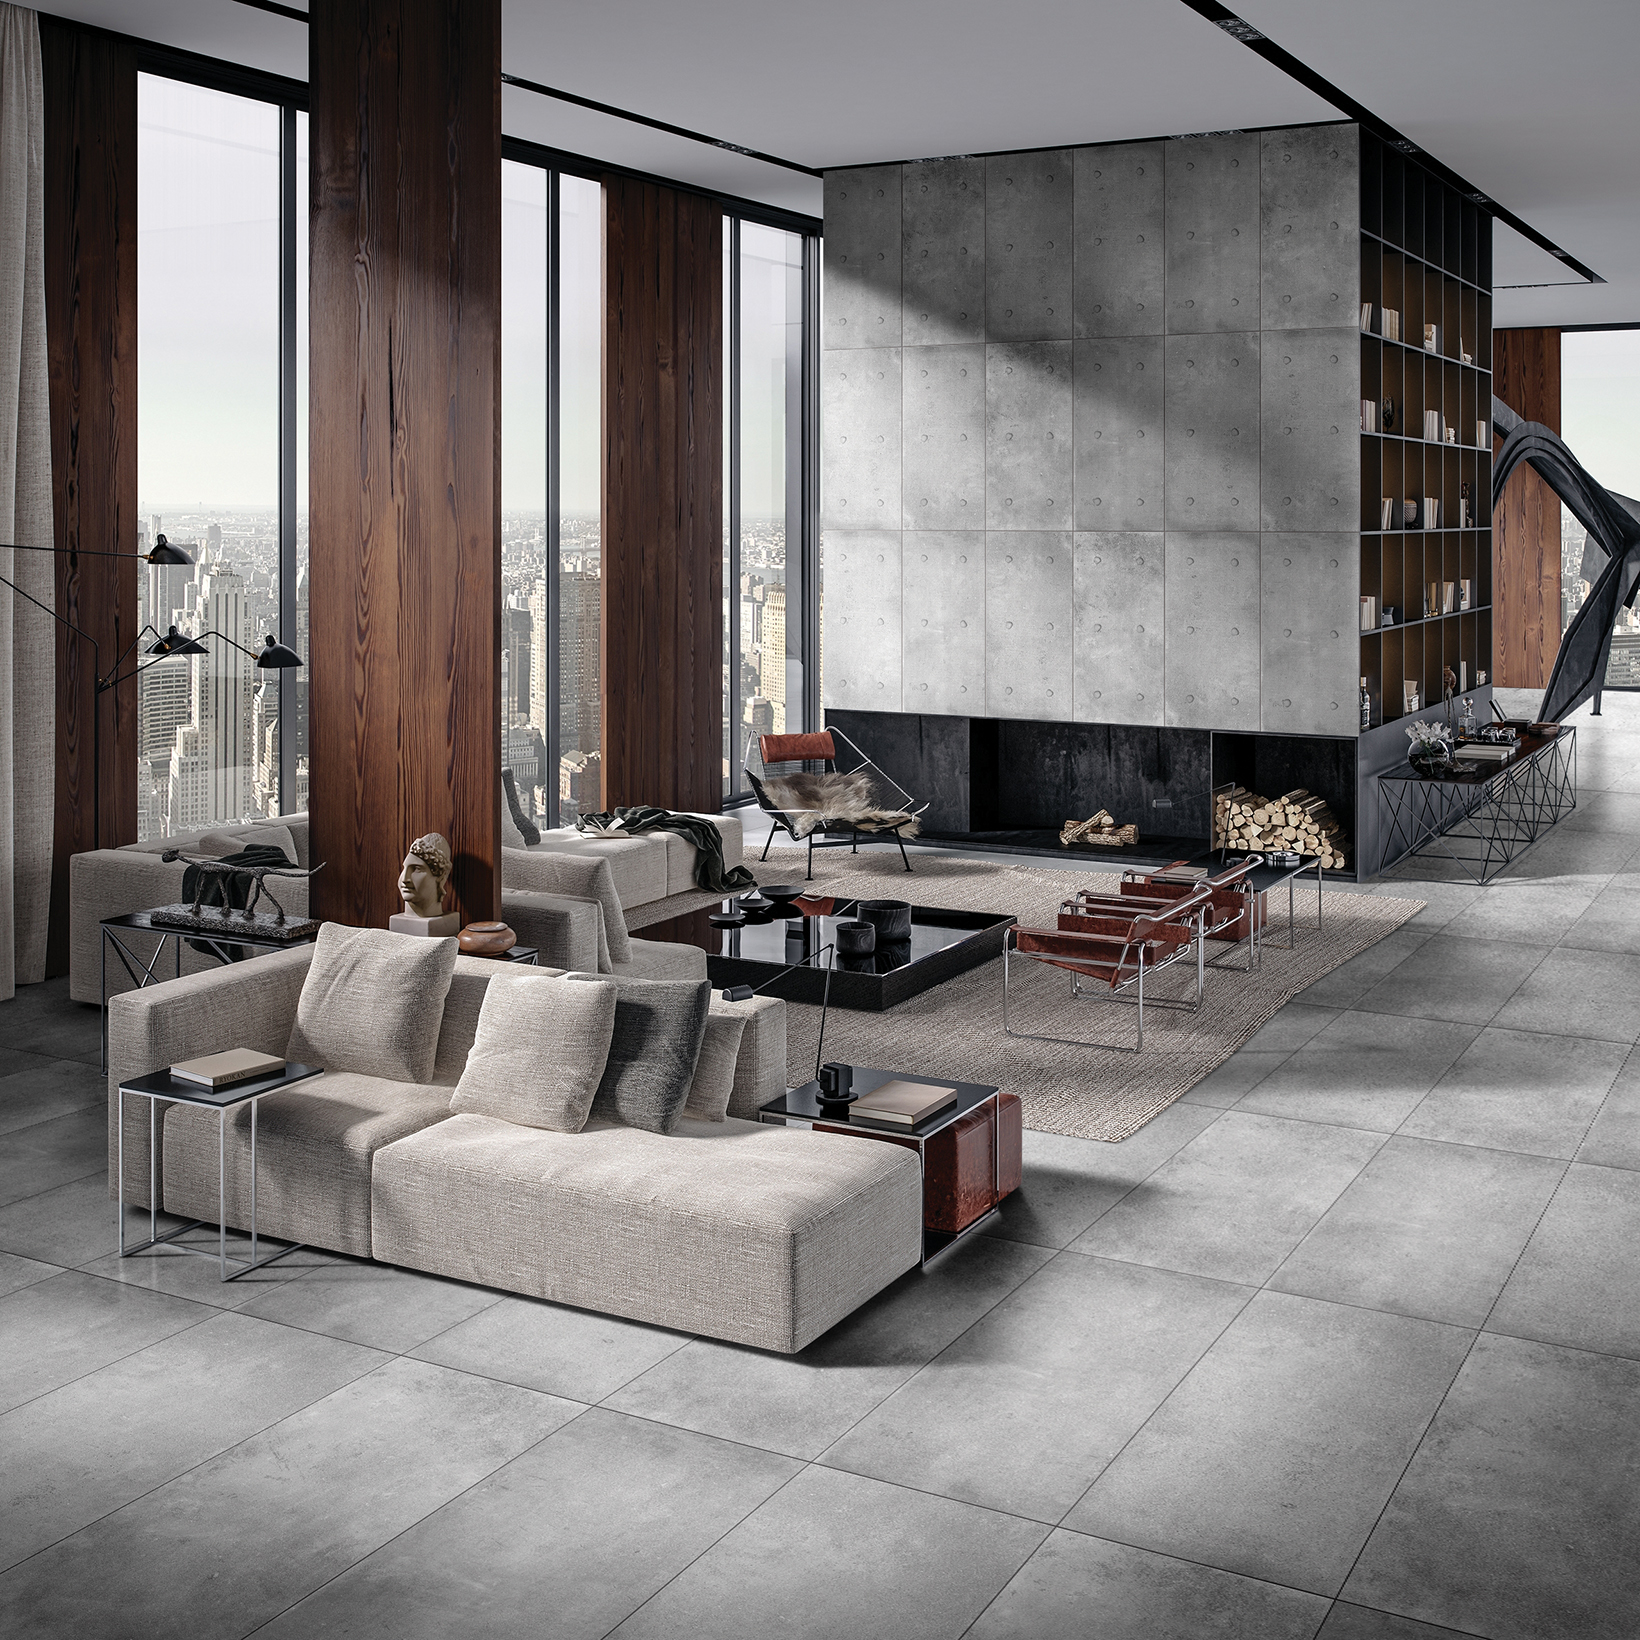 60x120cm Cement Look Tile|New Designs|Taku